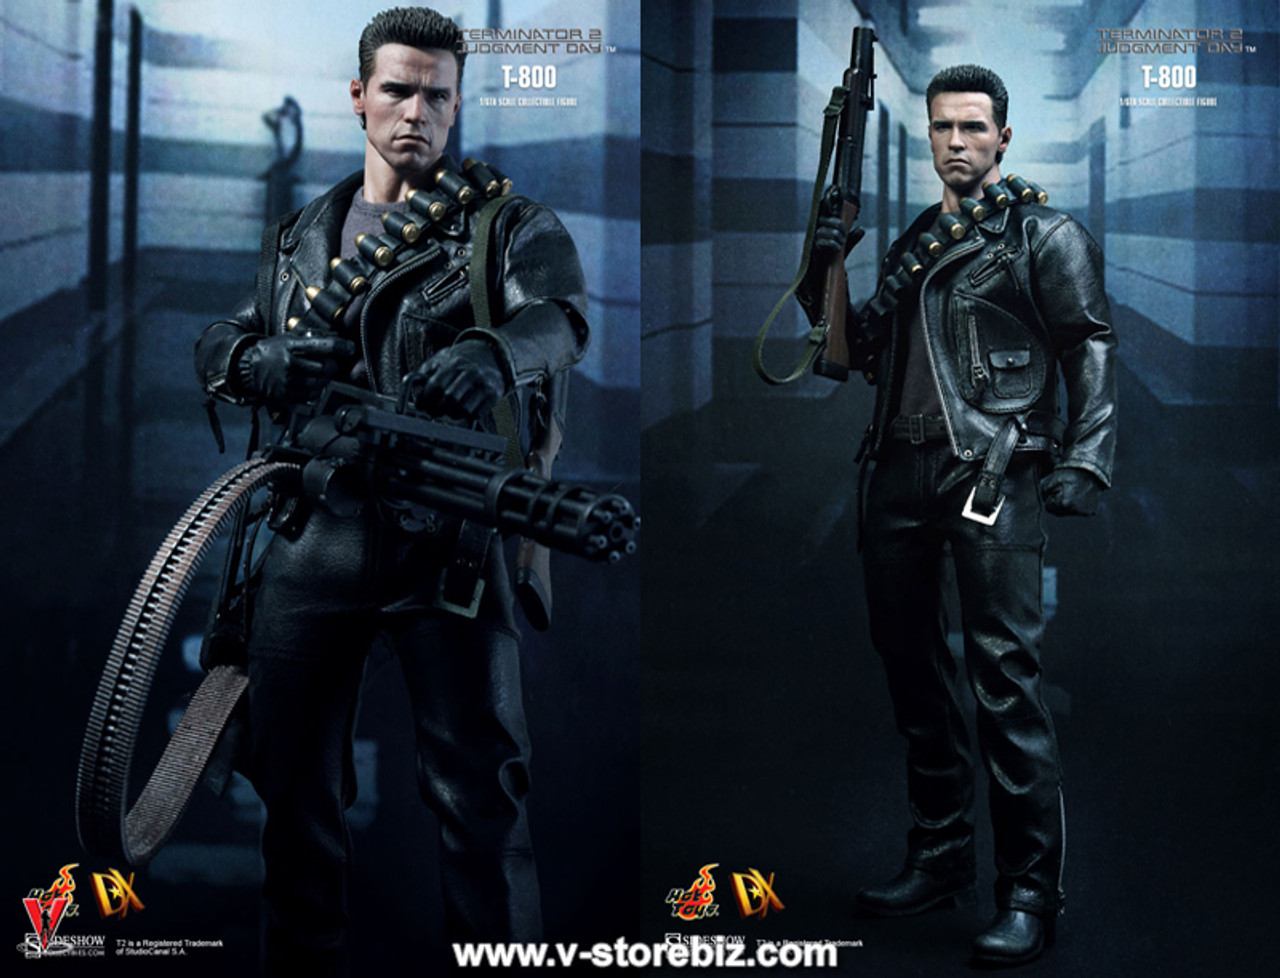 HOT FIGURE Toys 1//6 Terminator 2 Judgment Day T800 Leather suit